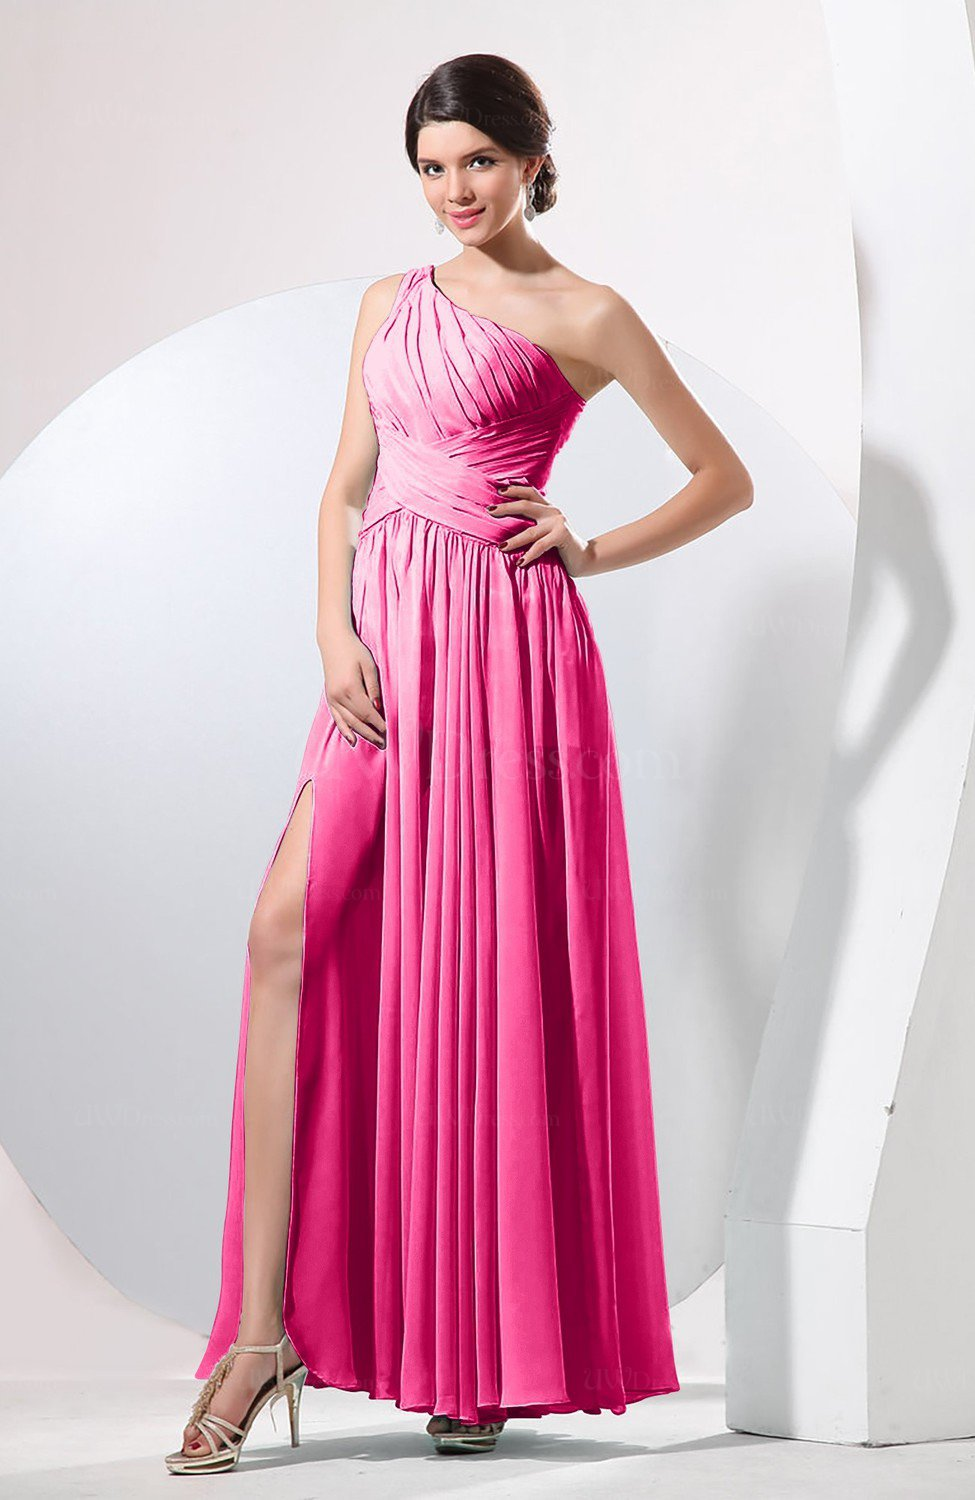 Fandango Pink Plain Sheath Sleeveless Floor Length Pleated Prom ...